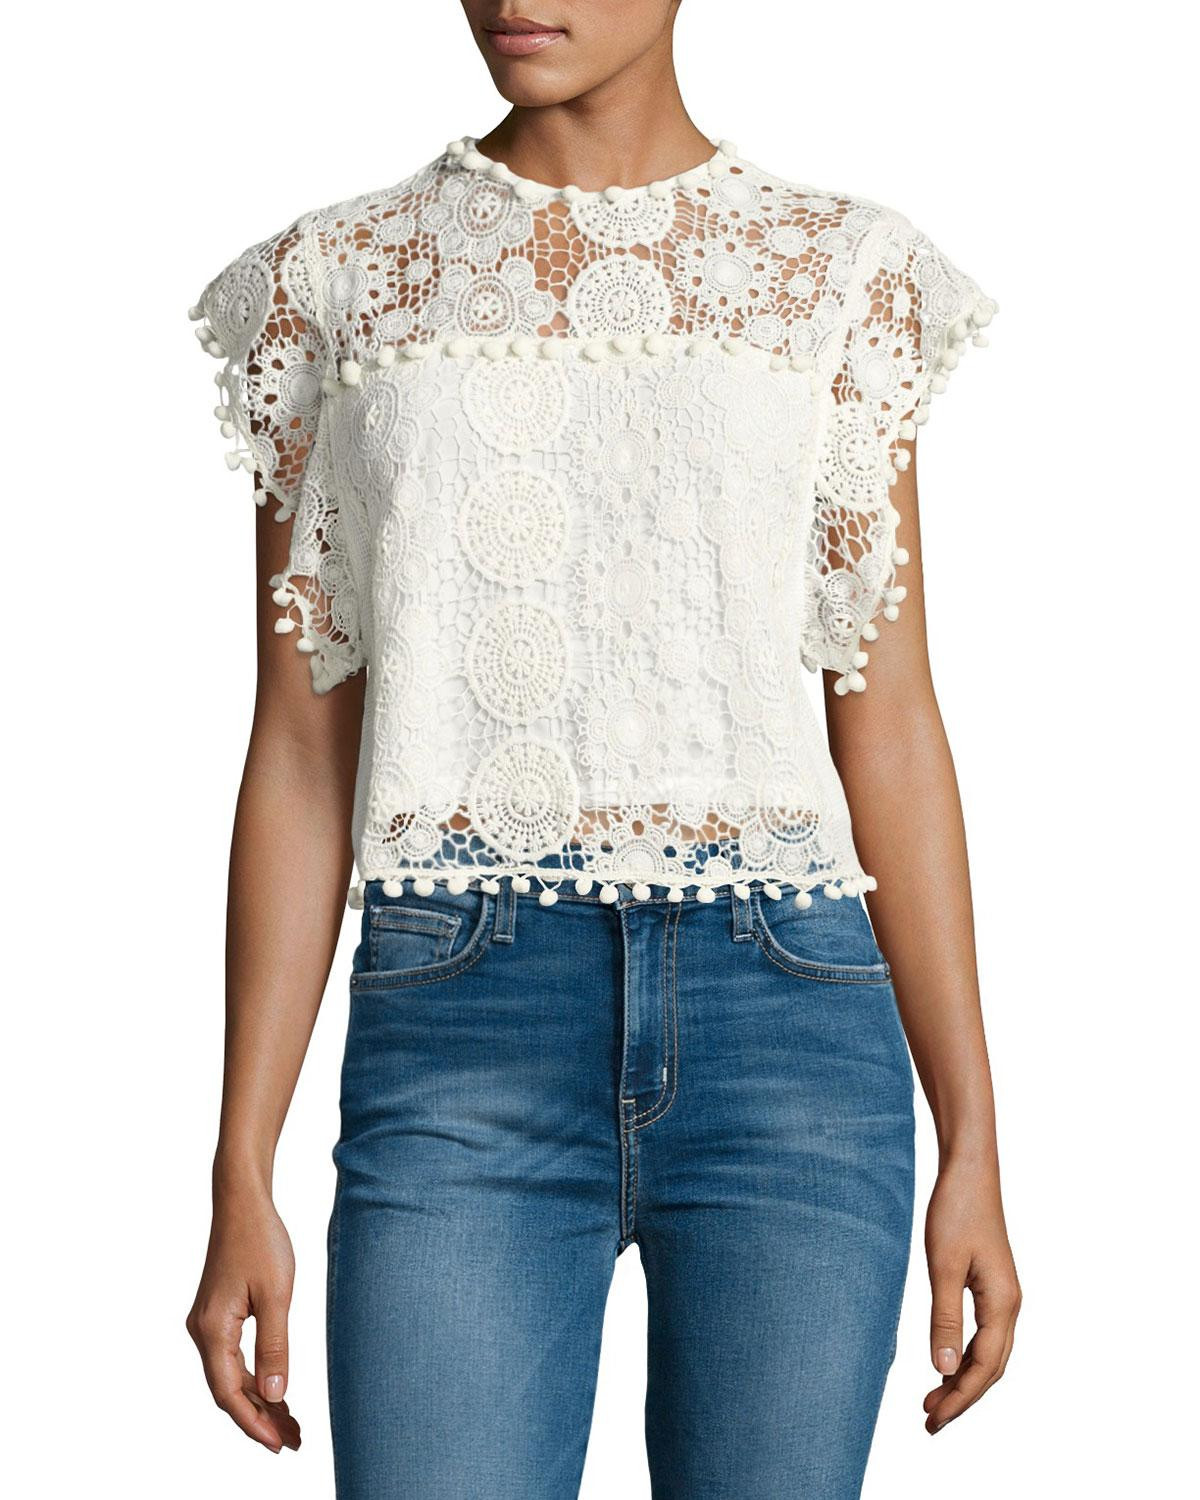 White Crochet Crop tops Best Of Lyst Tularosa Kennedy Crochet Crop top In White Of Gorgeous 46 Pics White Crochet Crop tops